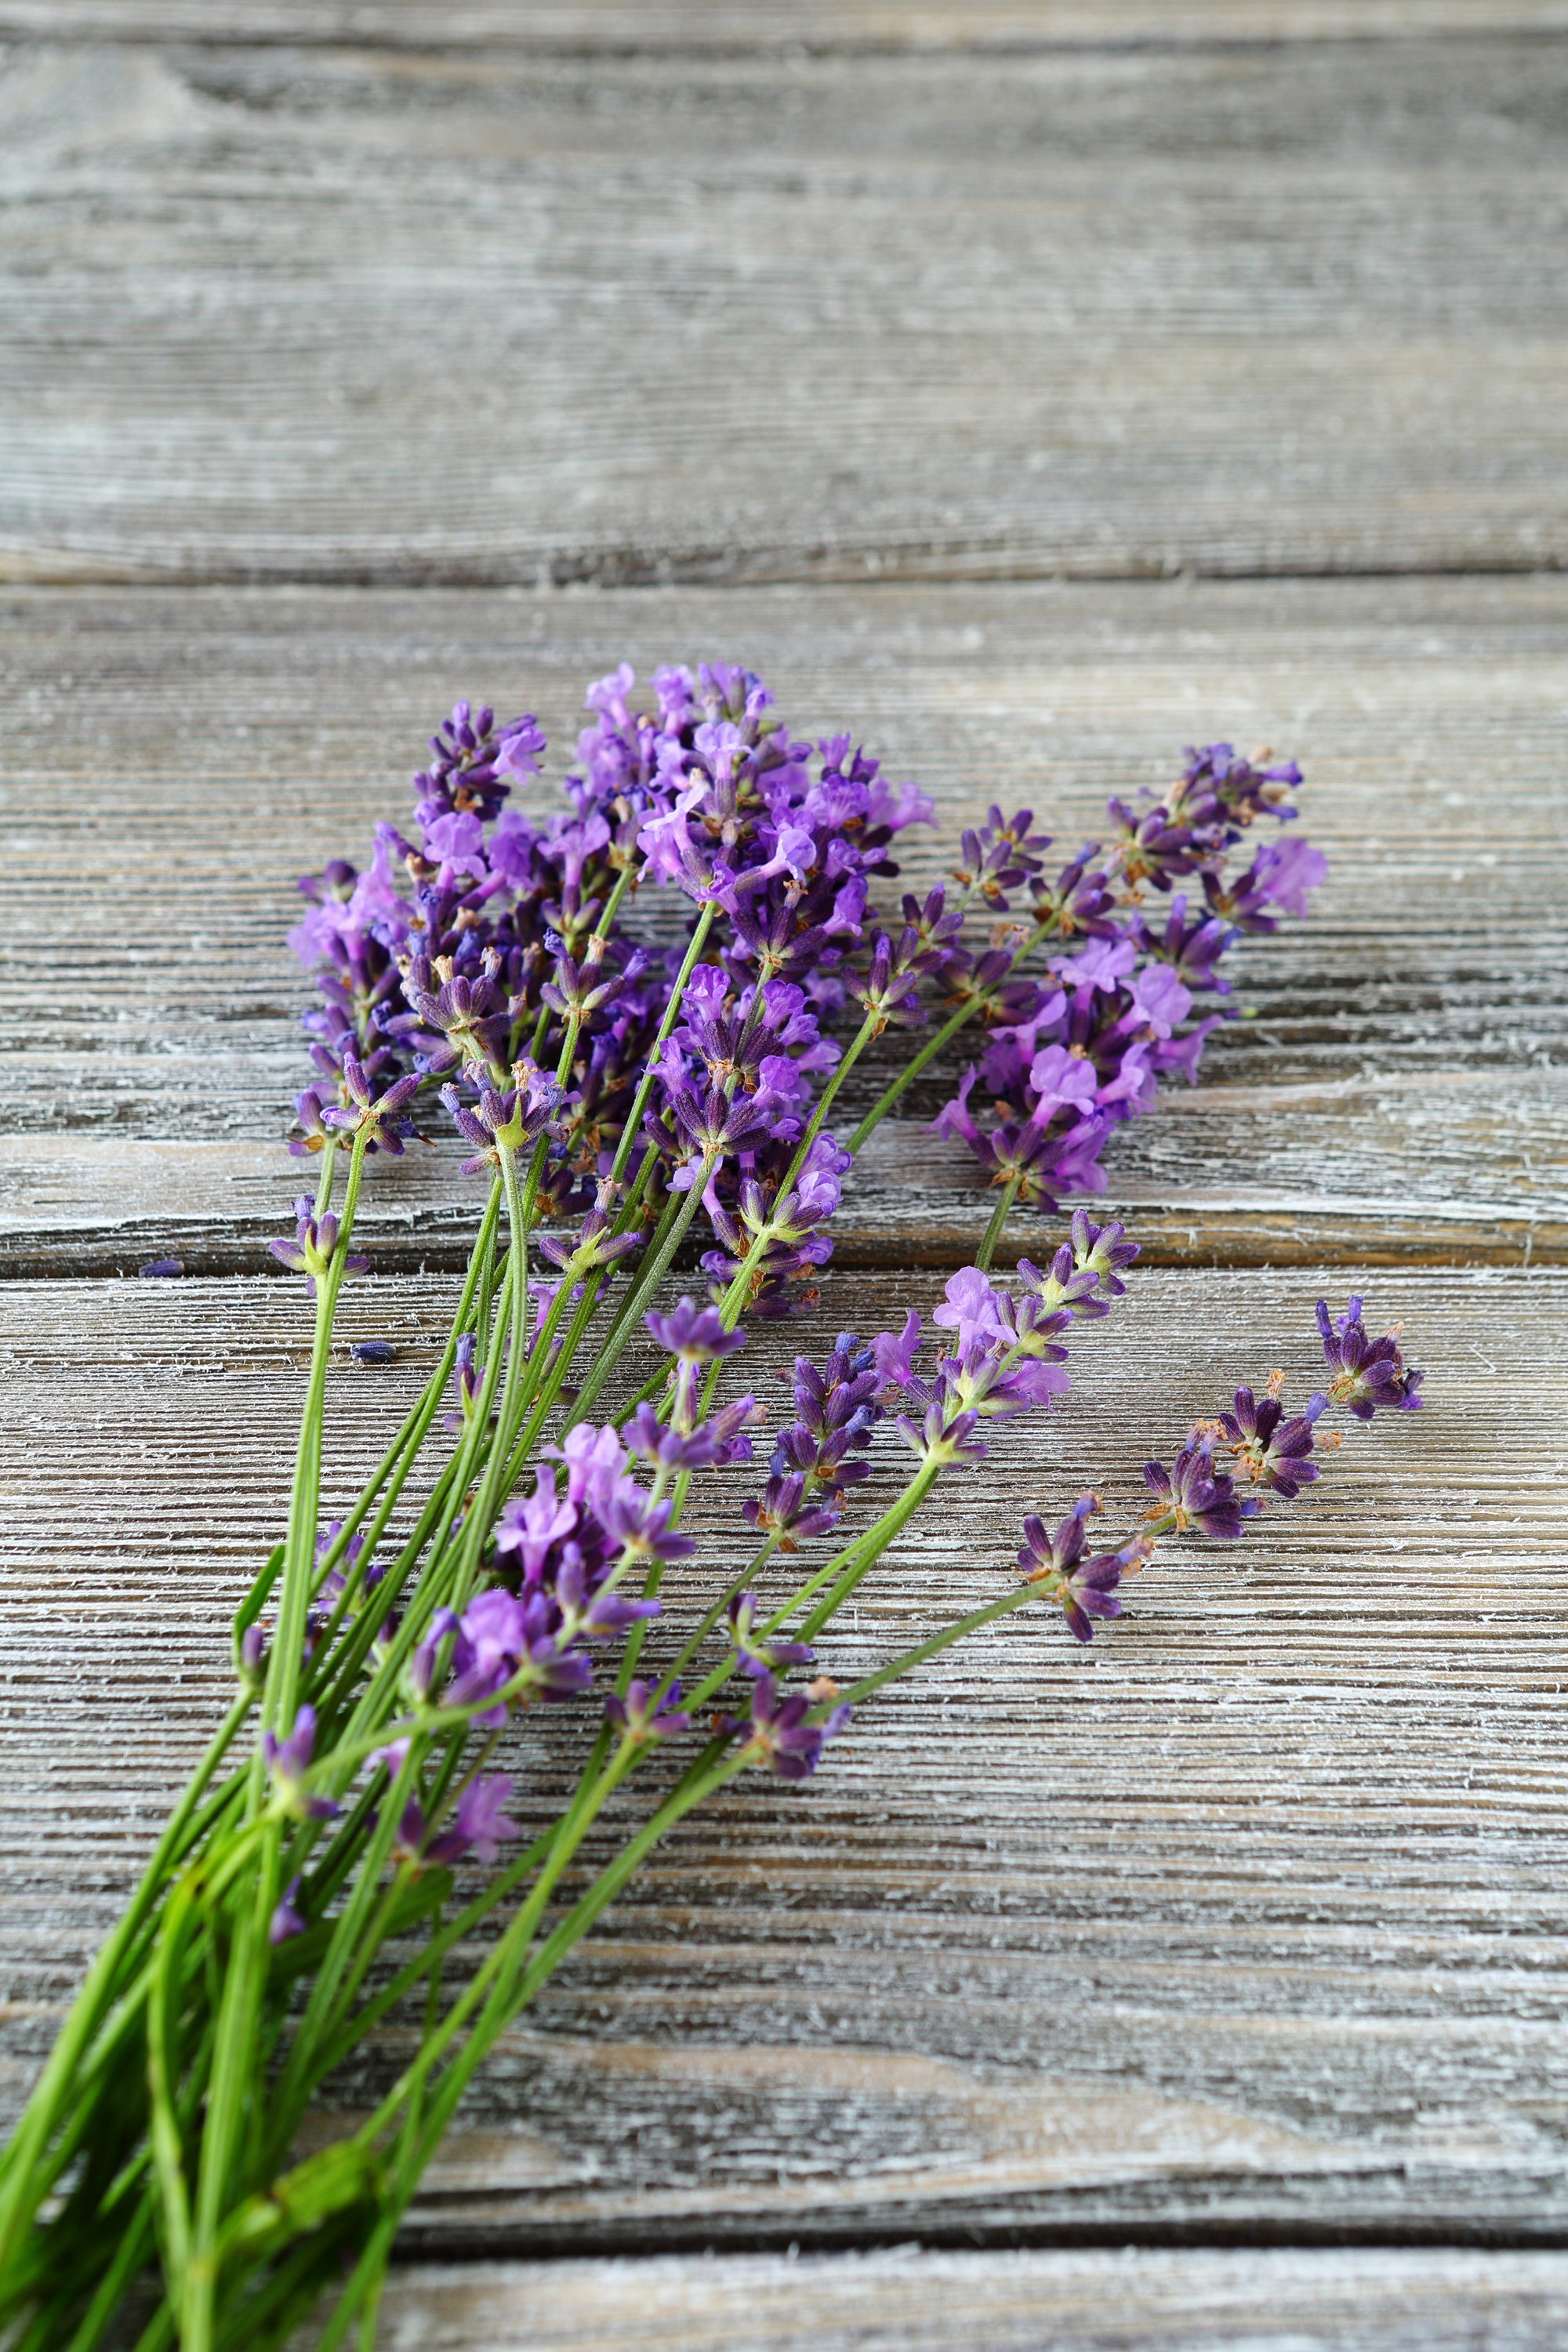 wedding send off ideas wedding send off ideas Either leave the stems as they are or take the flowers off distributing quantities in little bags or envelopes for guests A send off with lavender is